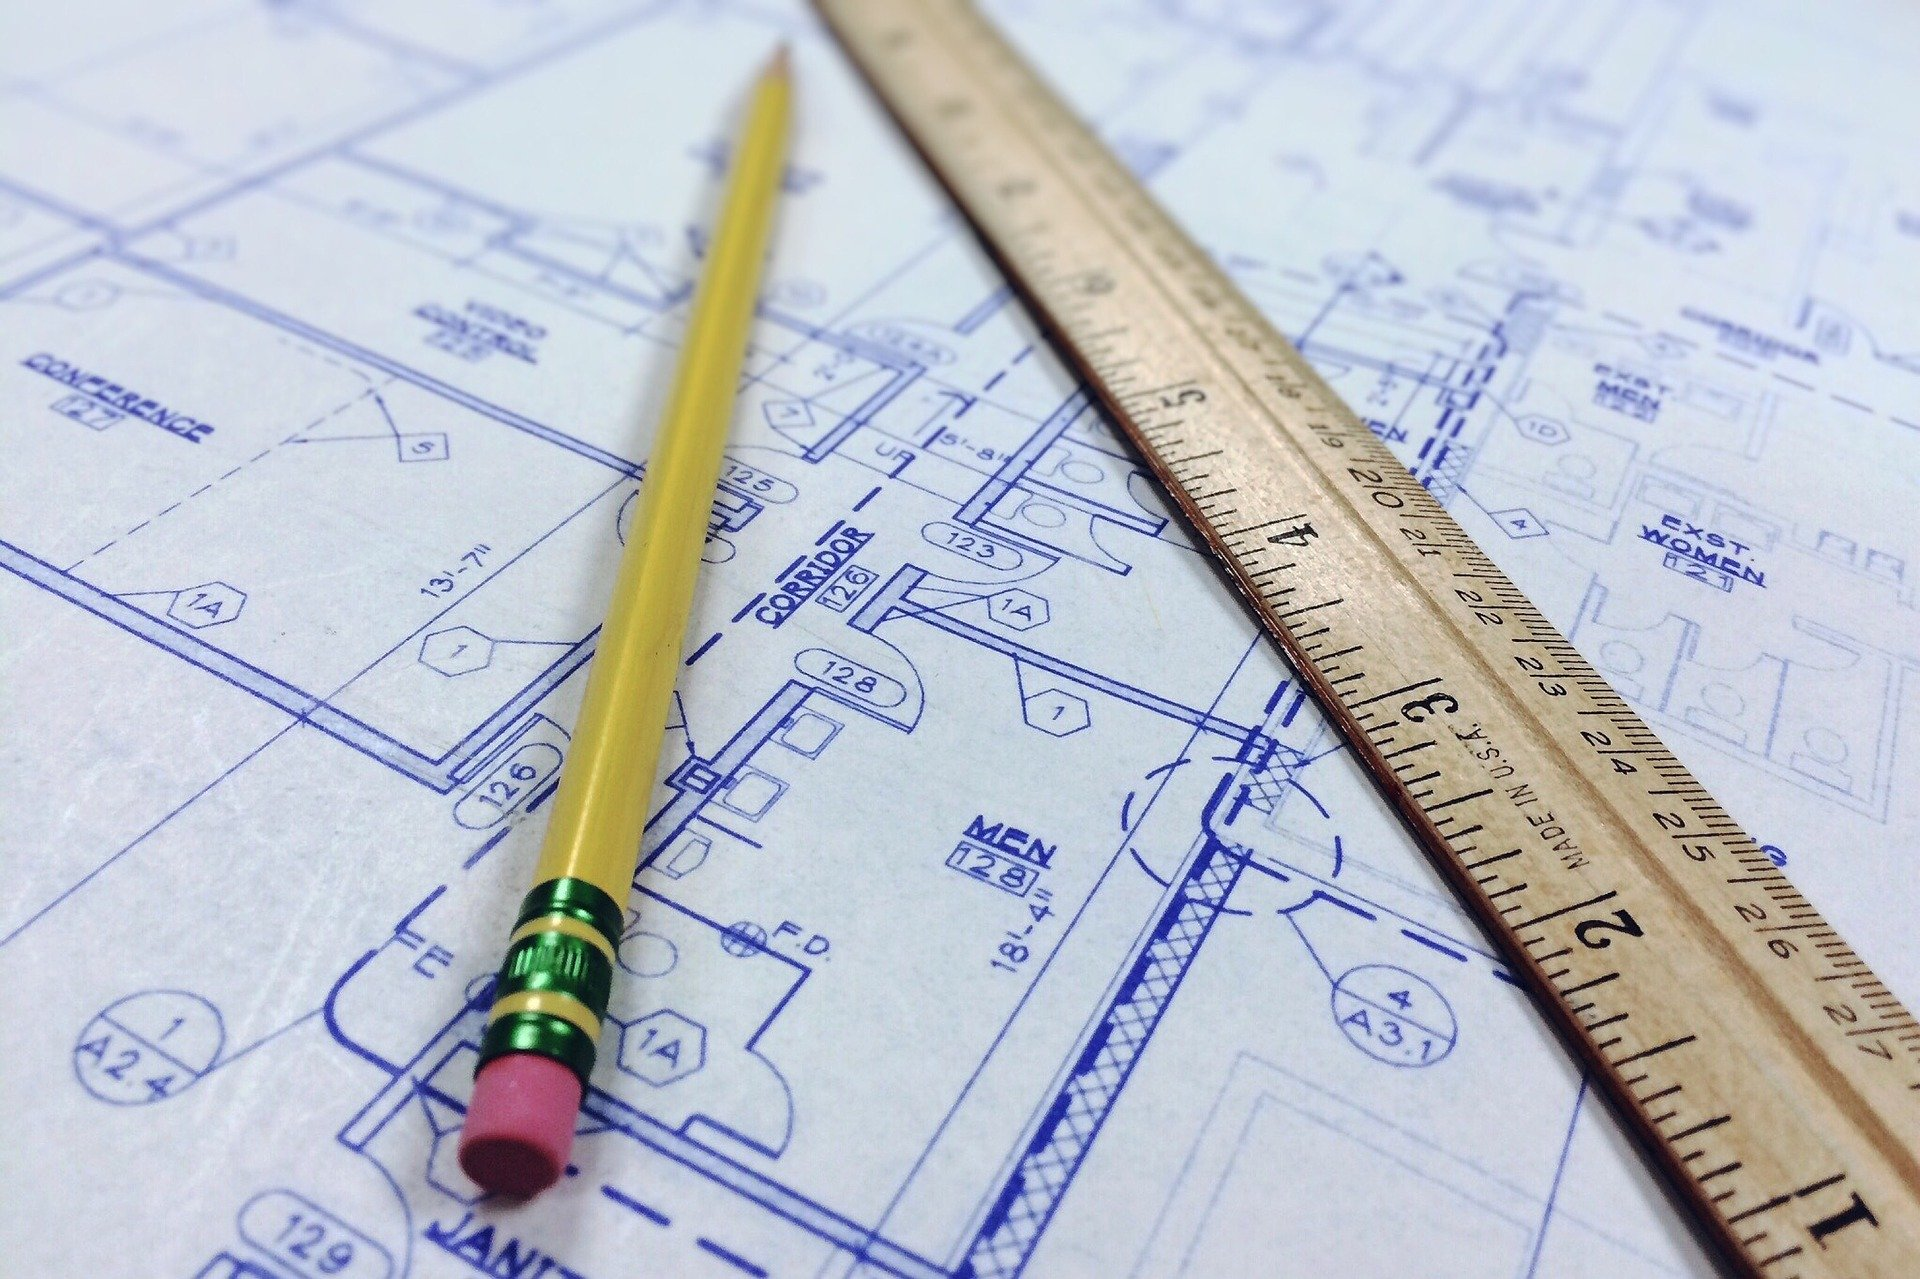 A blueprint with pencil and ruler.